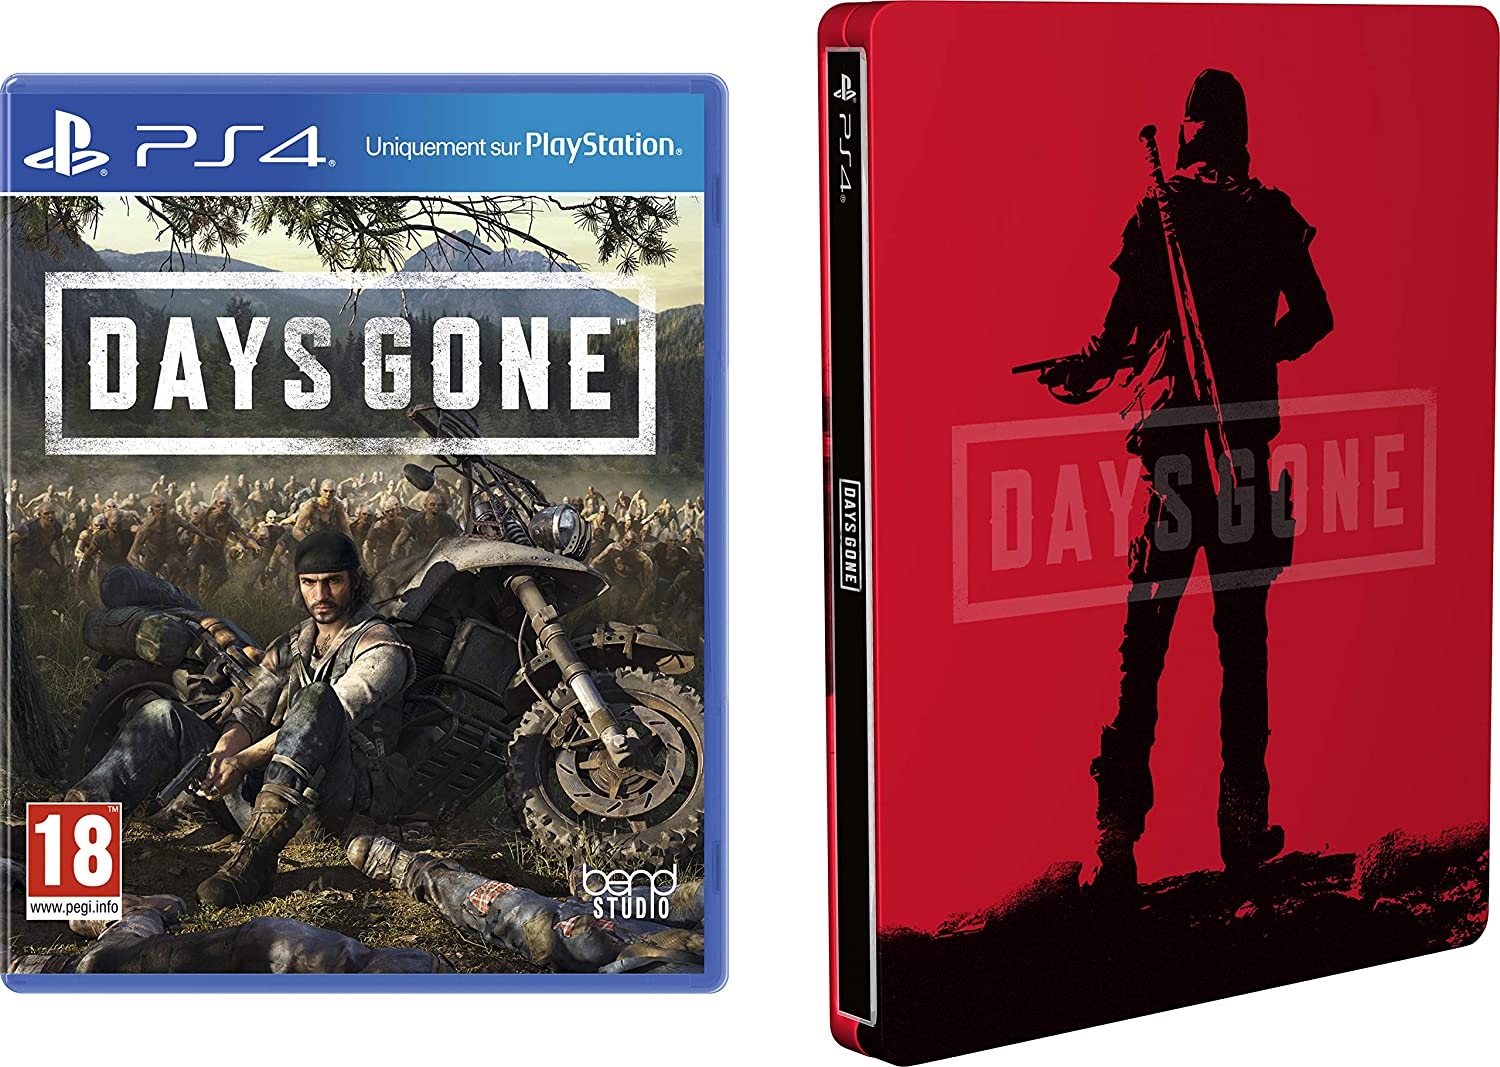 Days Gone Ps4 Steel Book Only Buy One Give One Video Games & Consoles